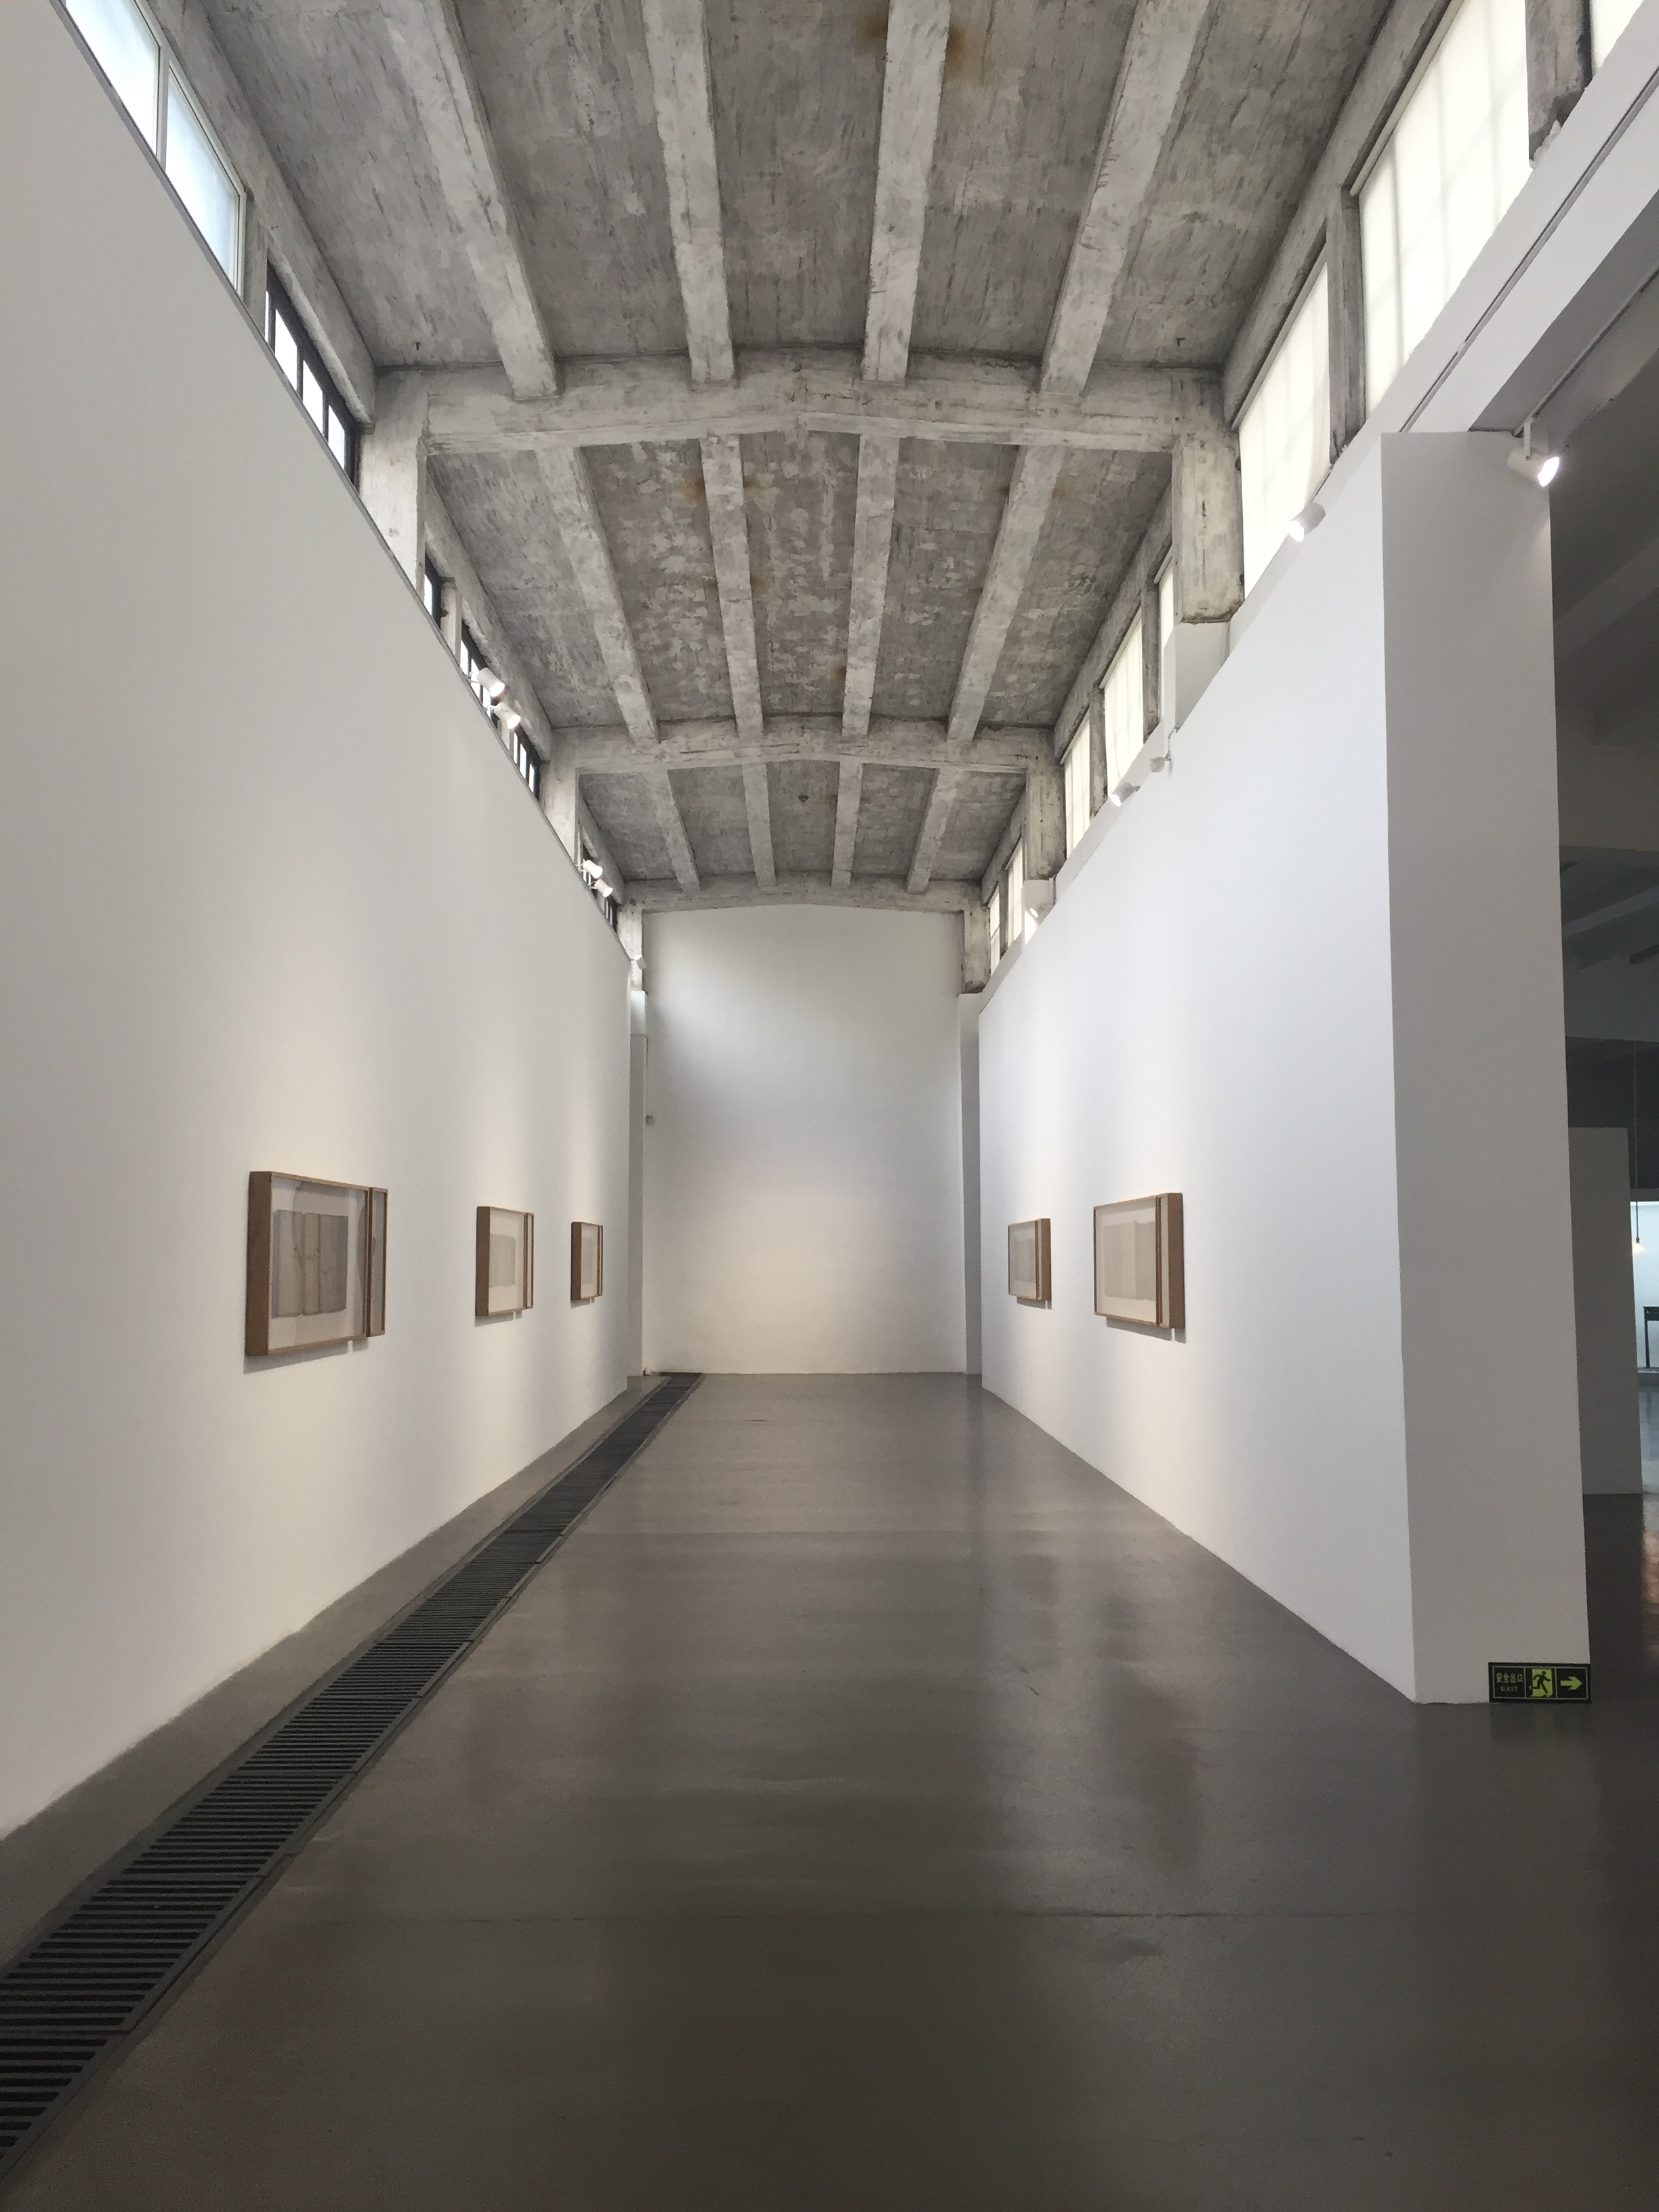 Galleries amidst the warehouses